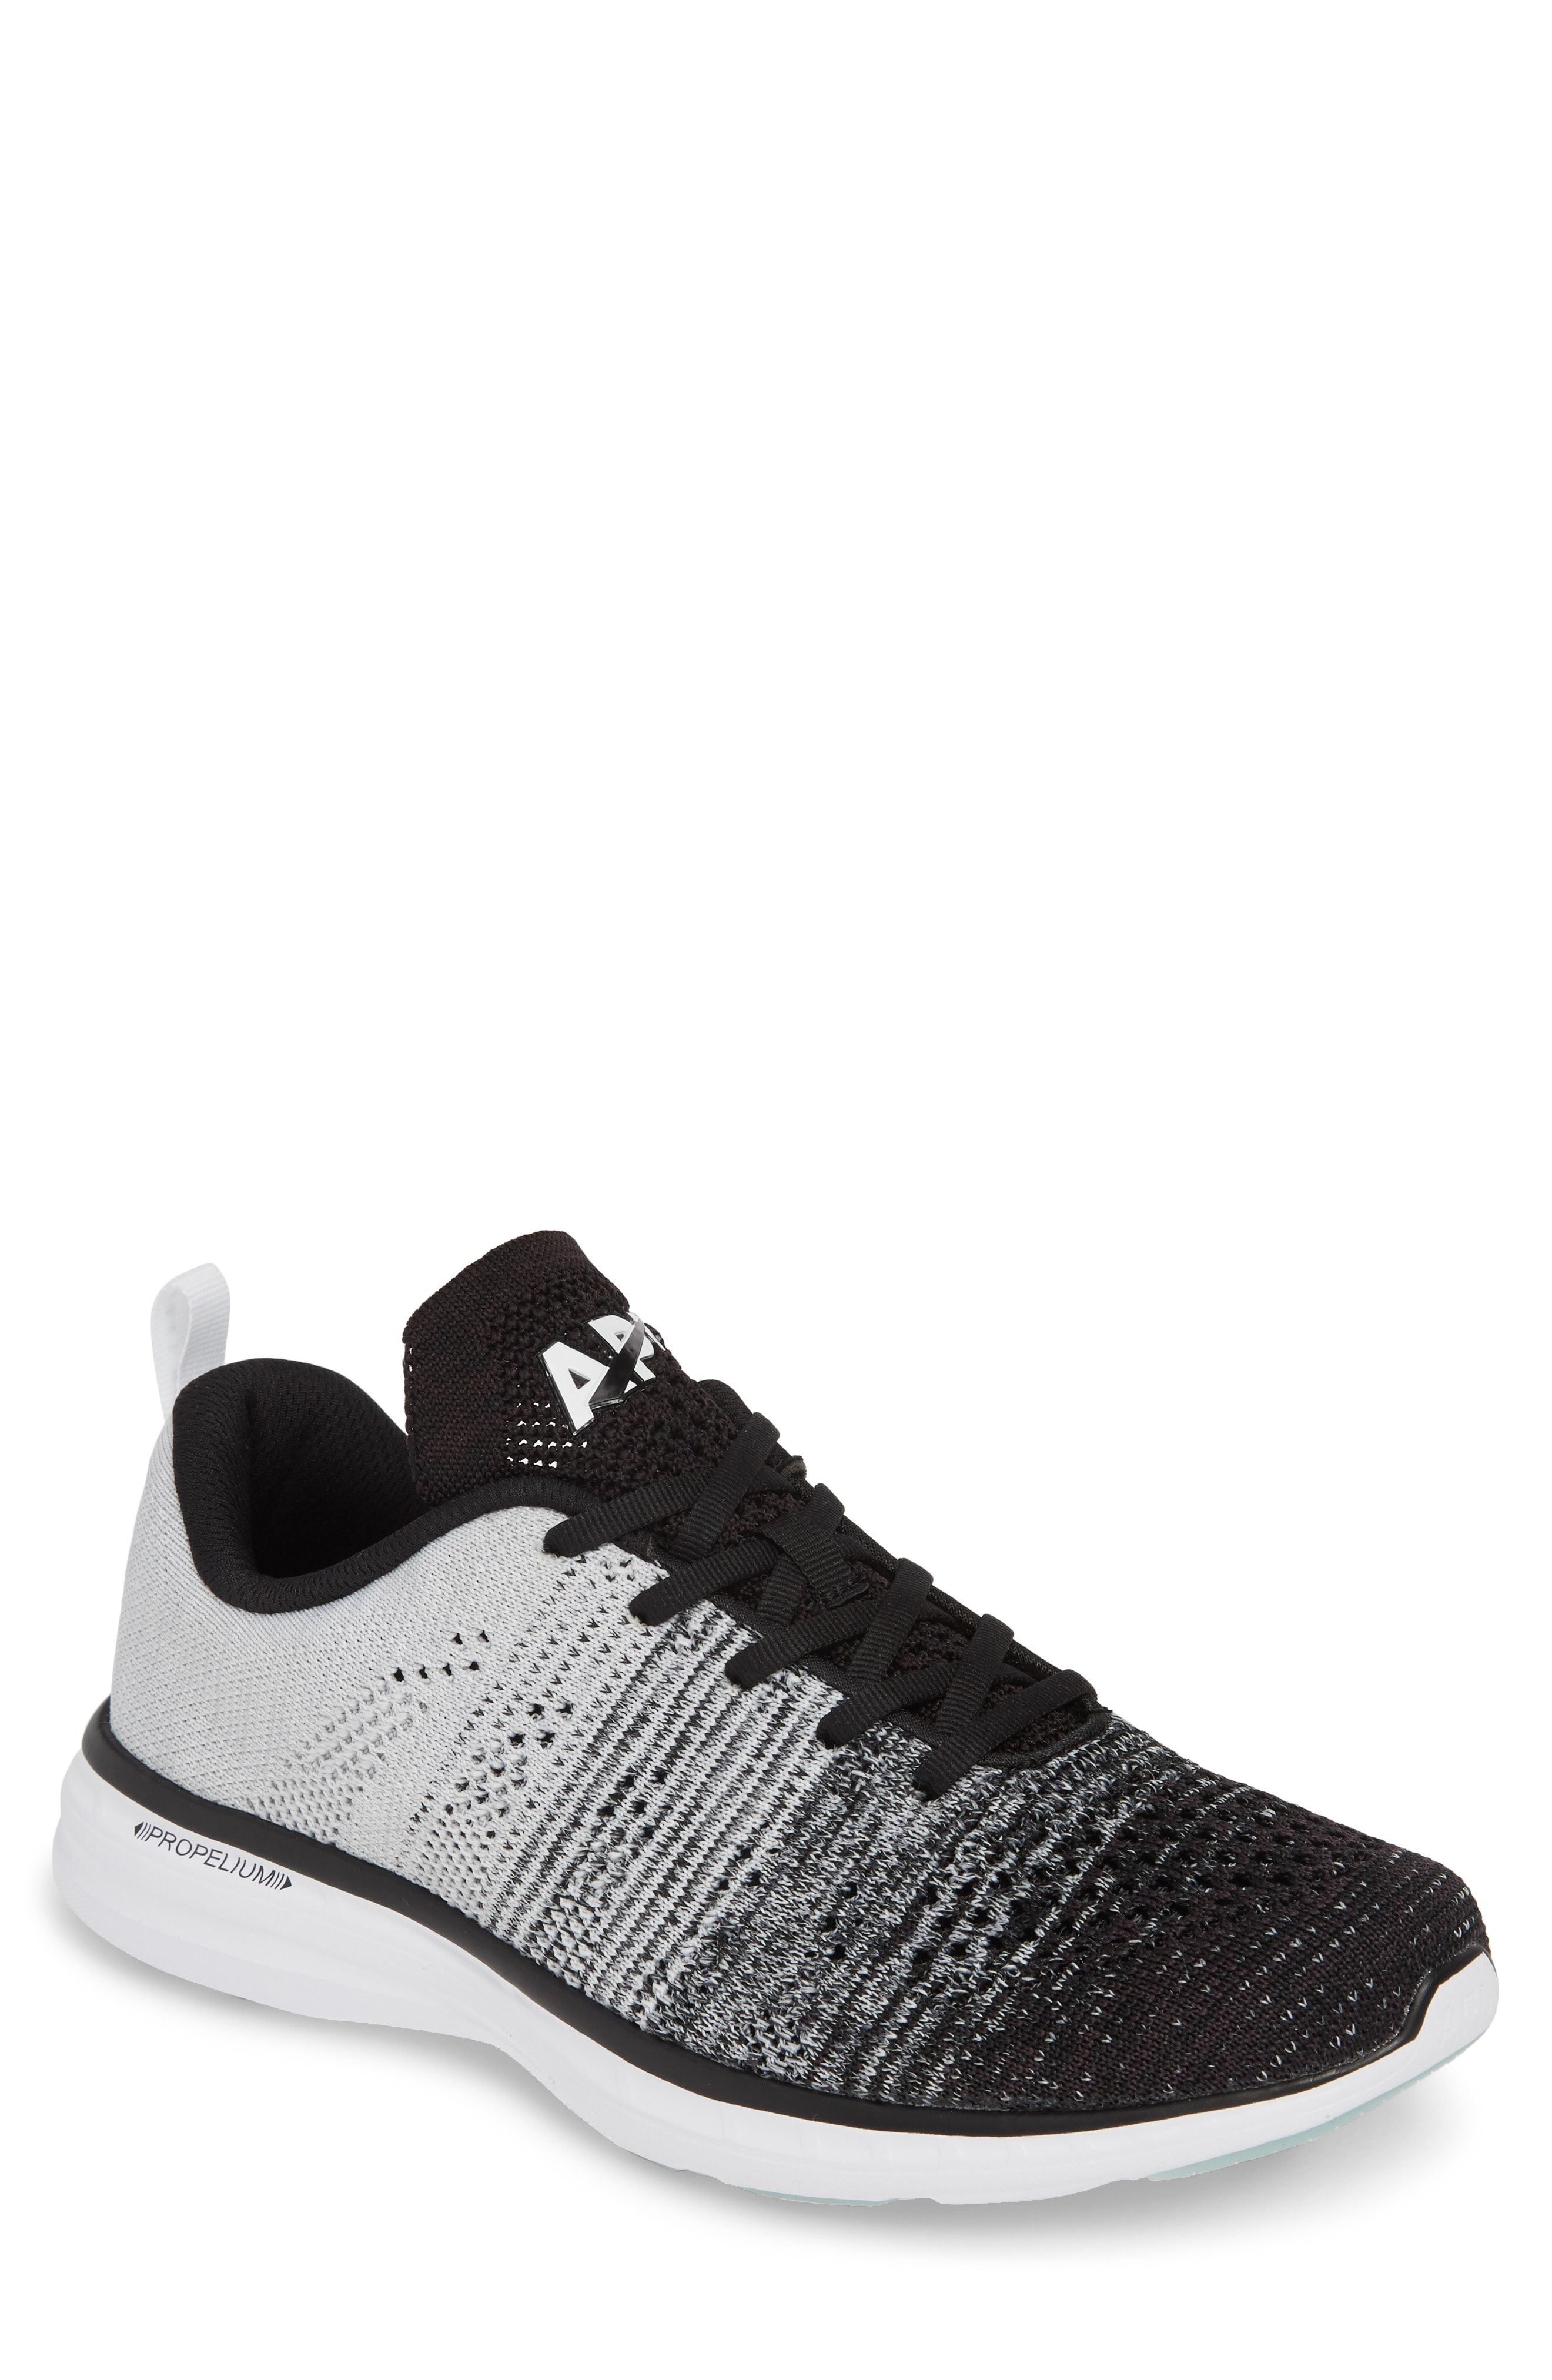 5ce2c486a60 APL ATHLETIC PROPULSION LABS TECHLOOM PRO KNIT RUNNING SHOE.   aplathleticpropulsionlabs  shoes